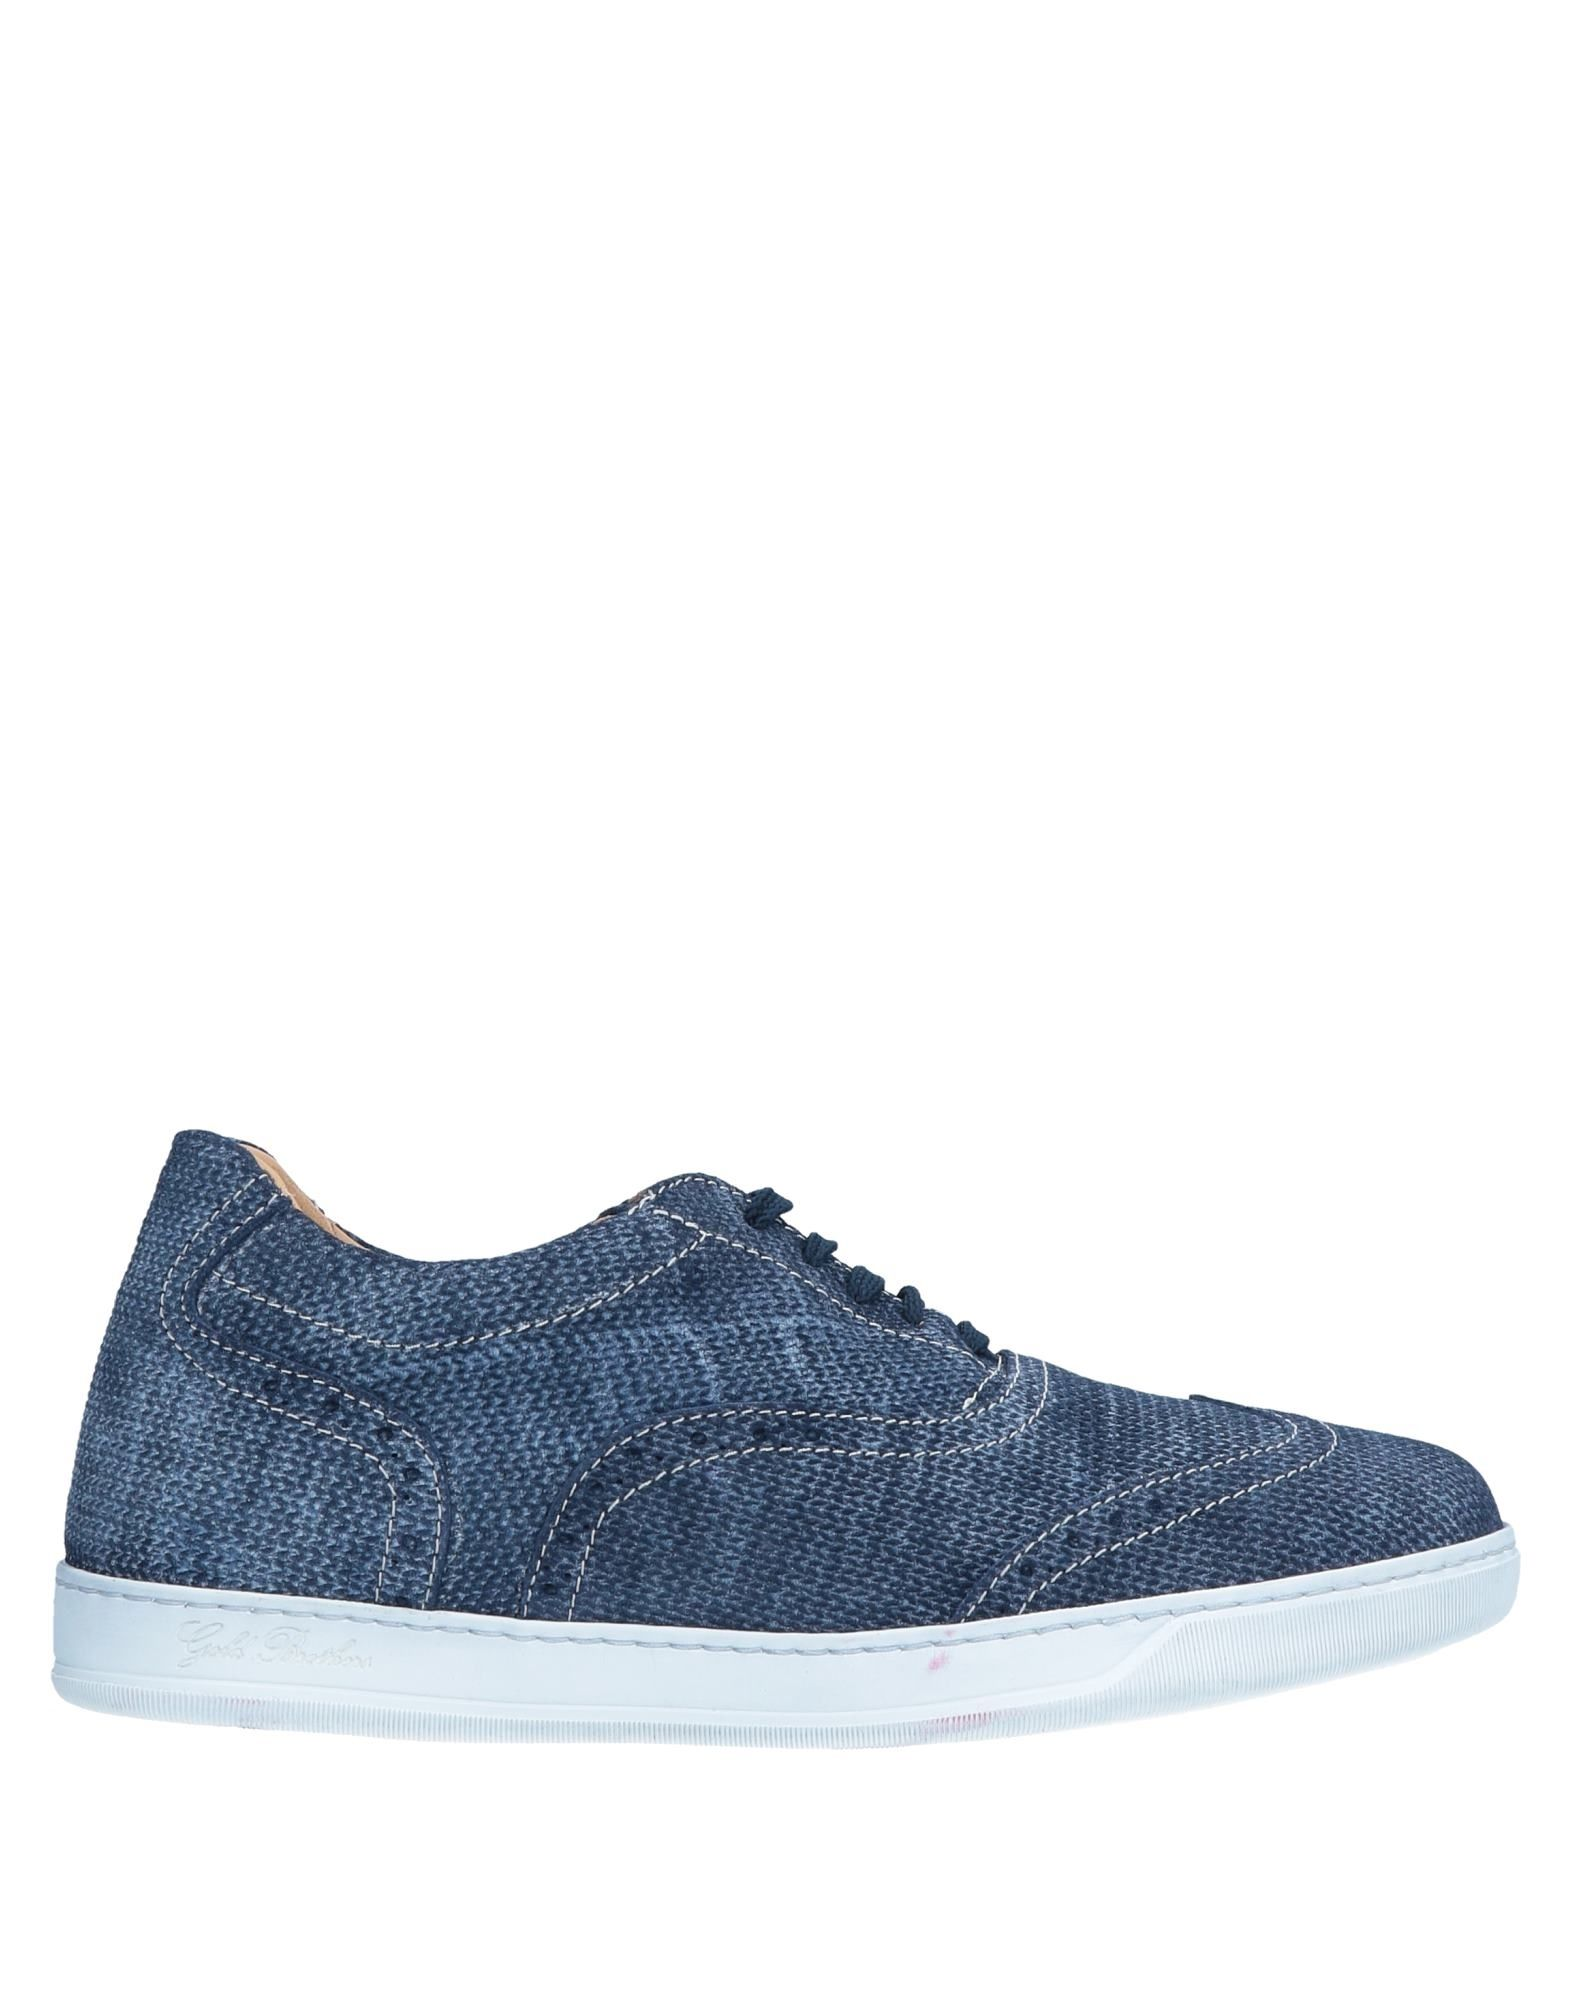 Sneakers Gold Brothers Homme - Sneakers Gold Brothers  Bleu Remise de marque